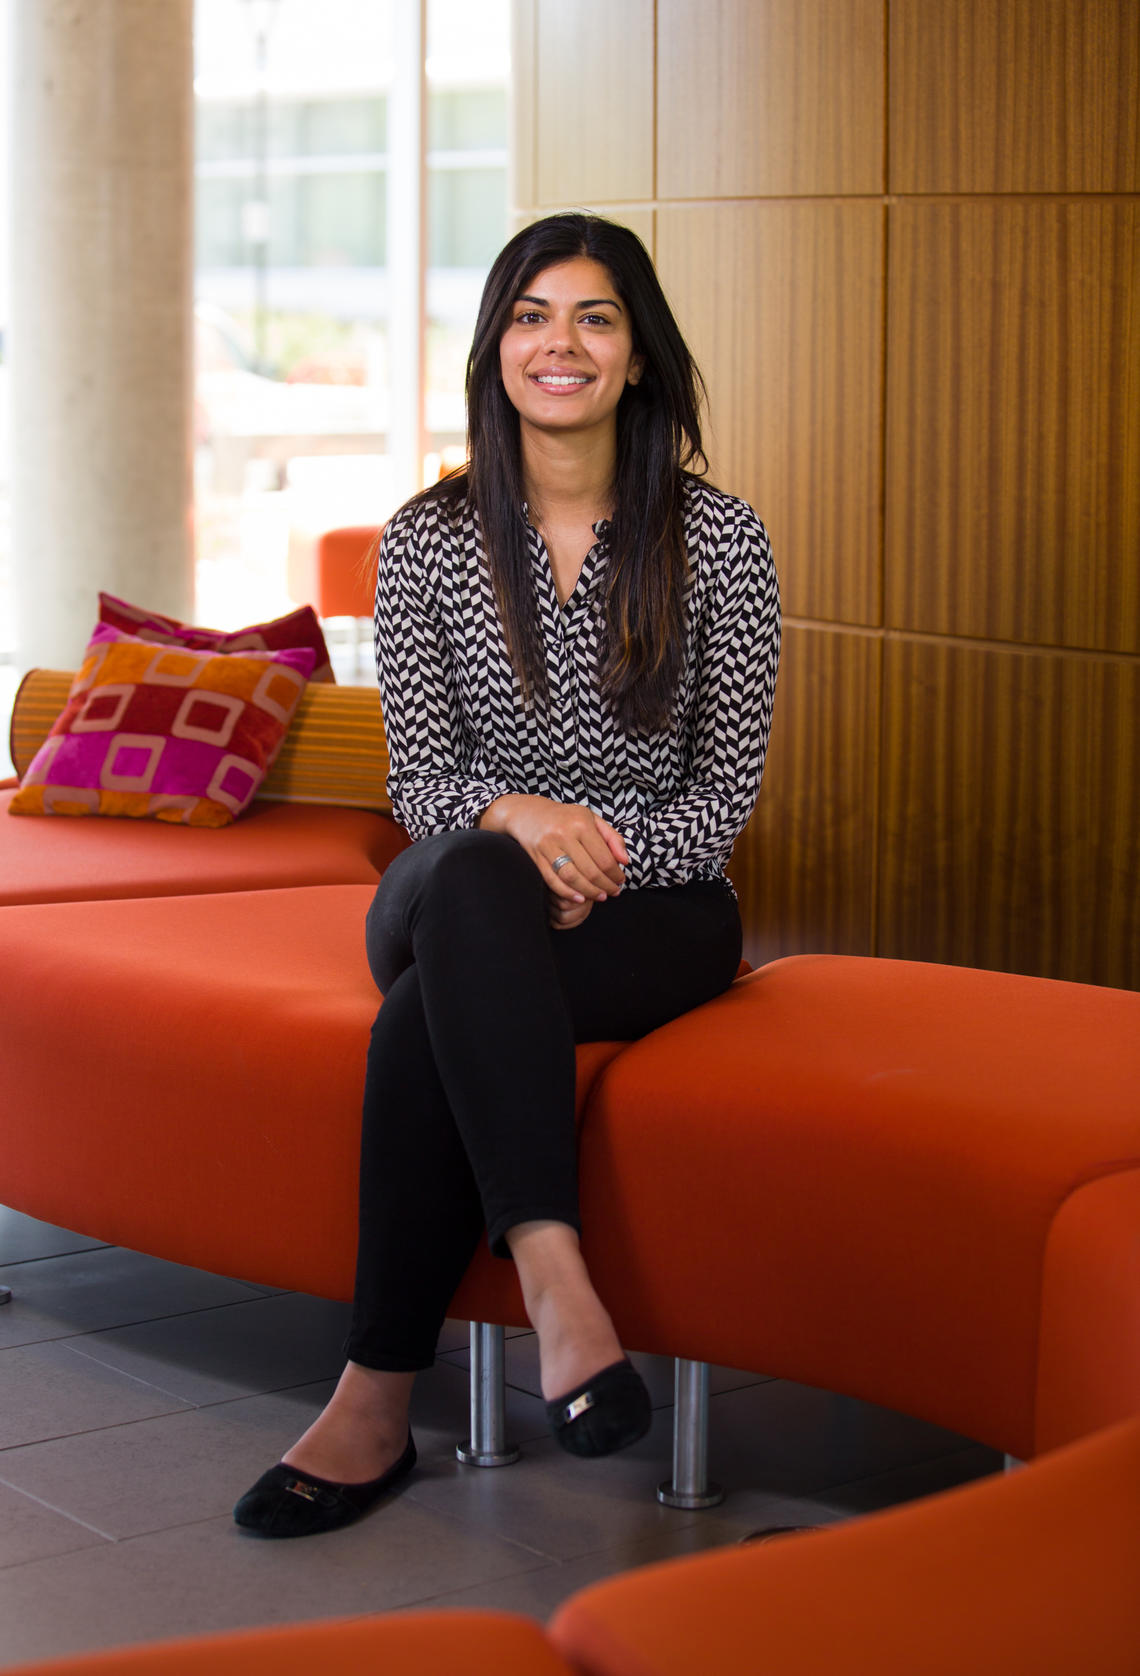 Hena Qureshi, a master's student at the Cumming School of Medicine, says three factors made a difference to their team in the competition: a great multidisciplinary team, accomplished mentors, and expertise from the outside to lean on.